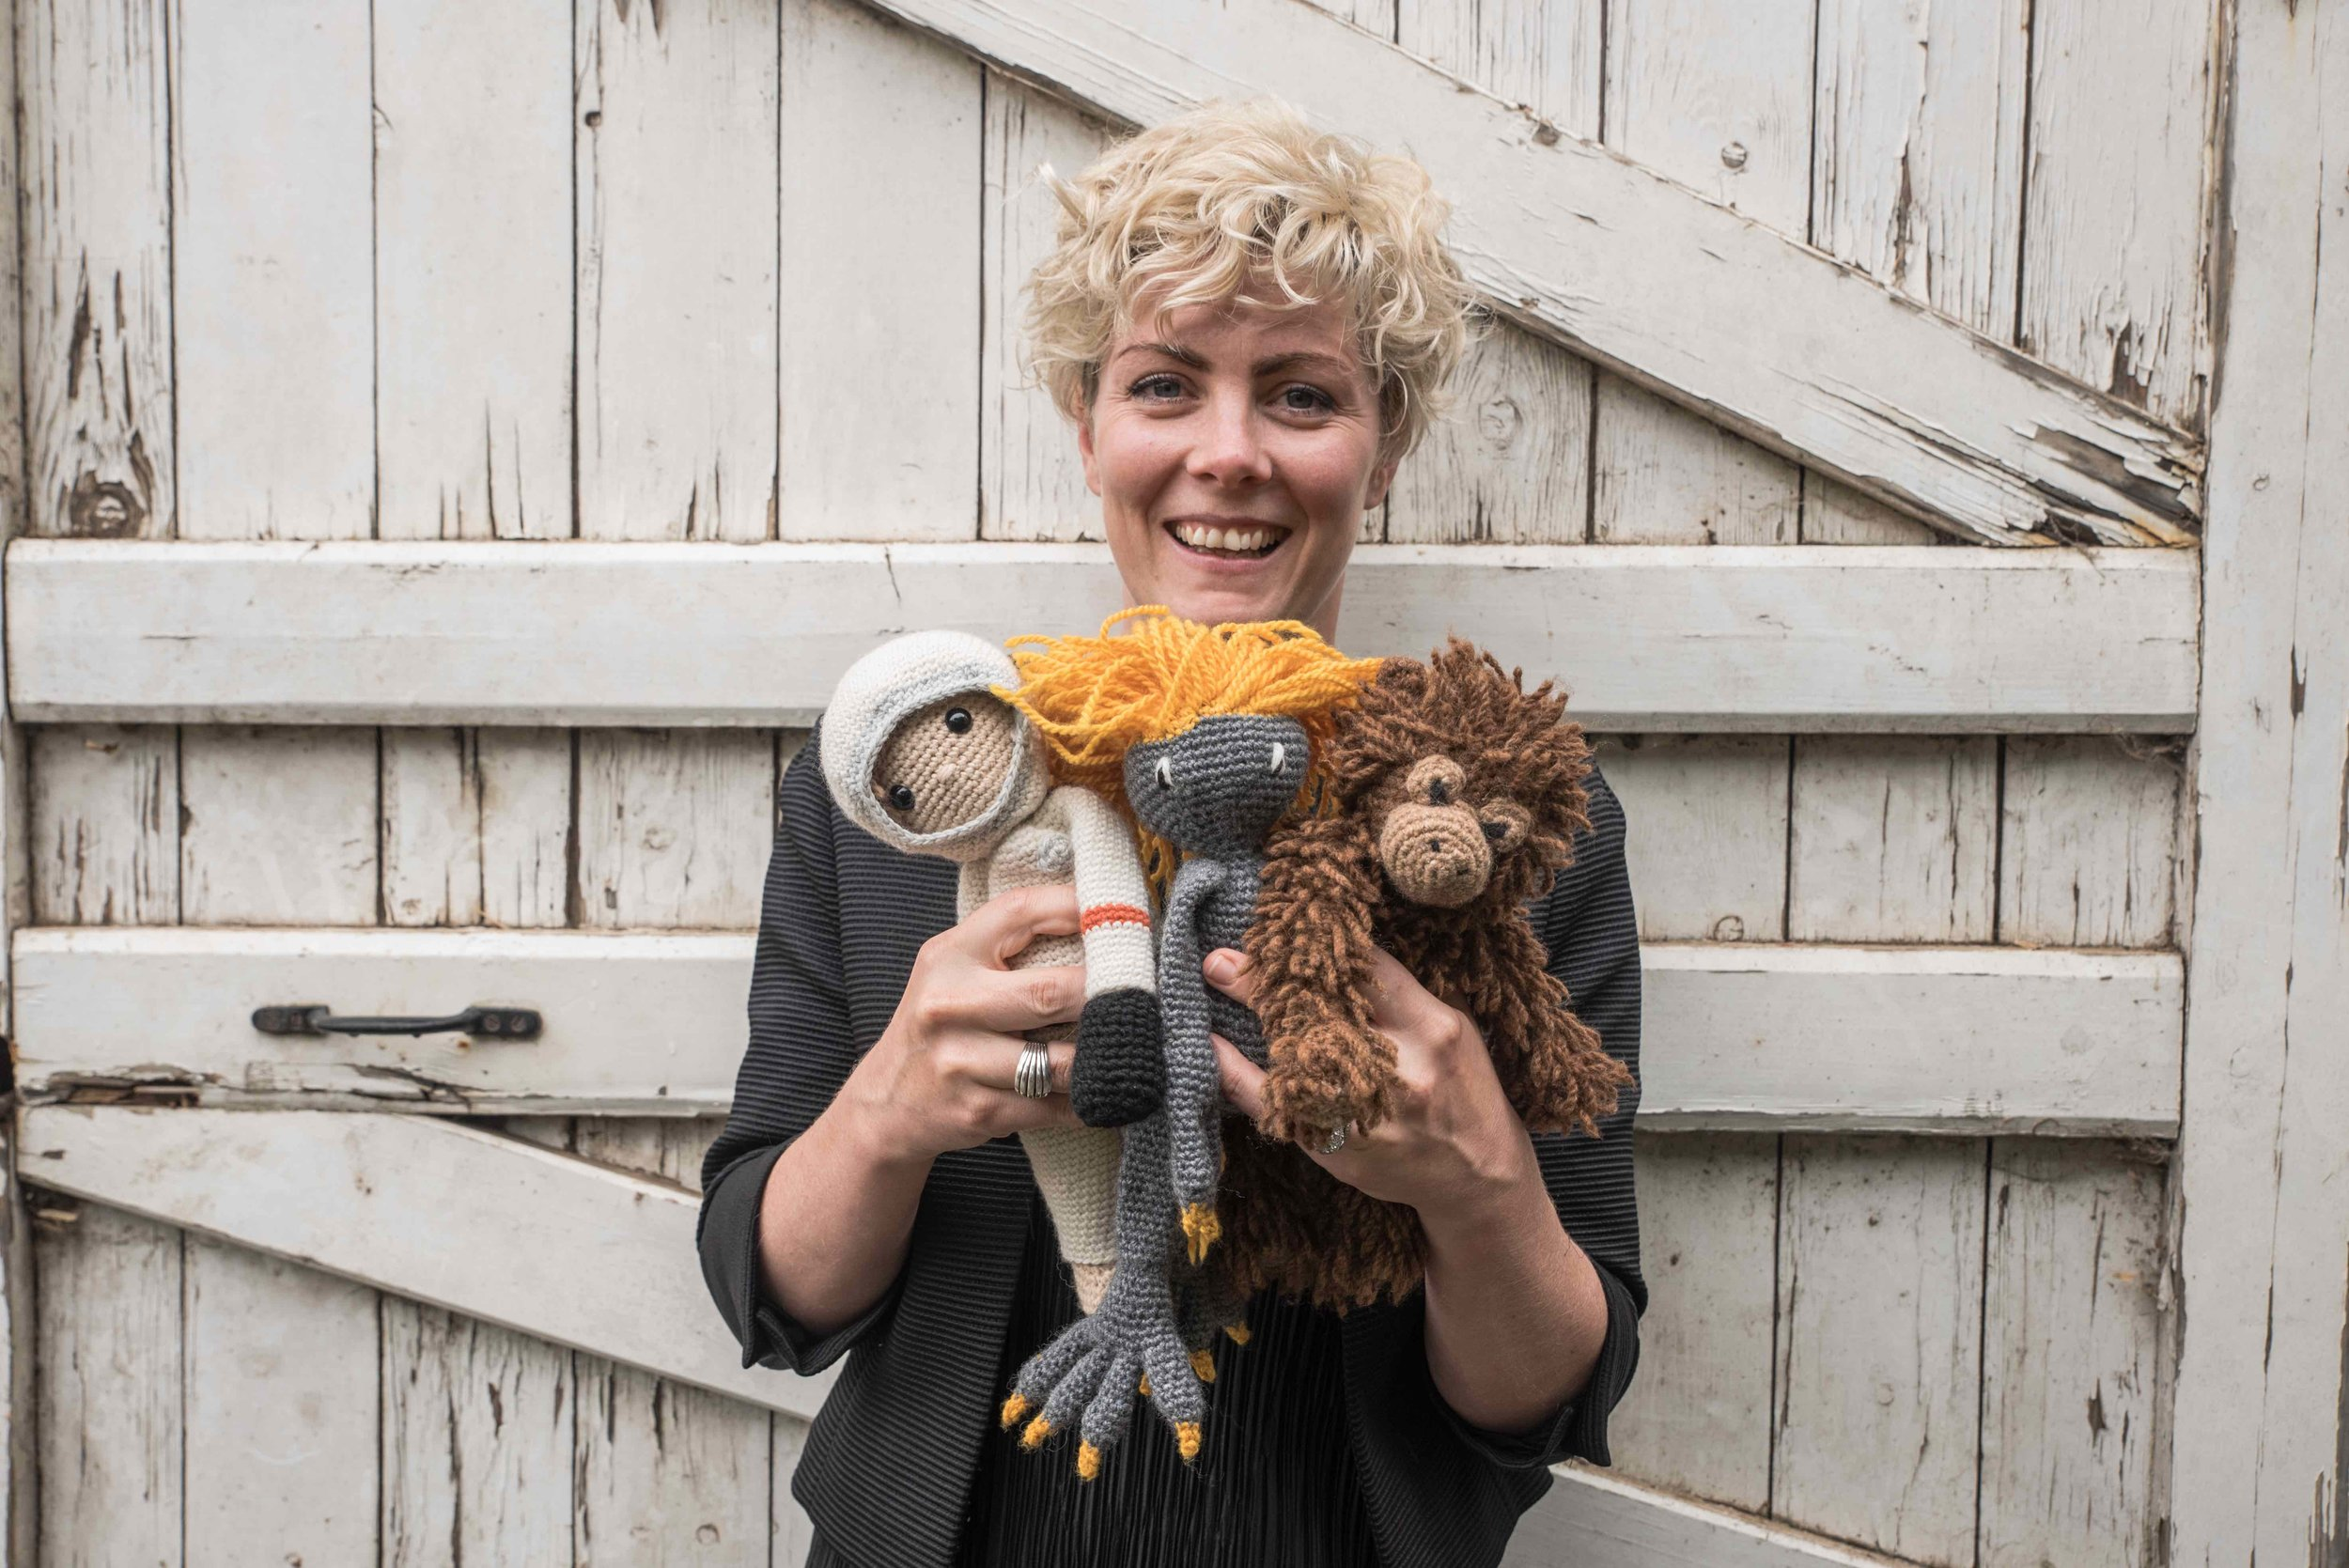 TOFT  TOFT specialise in luxury British knitting and crochet yarns & kits. TOFT is the home of the best-selling crochet book collection Edward's Menagerie by Kerry Lord.